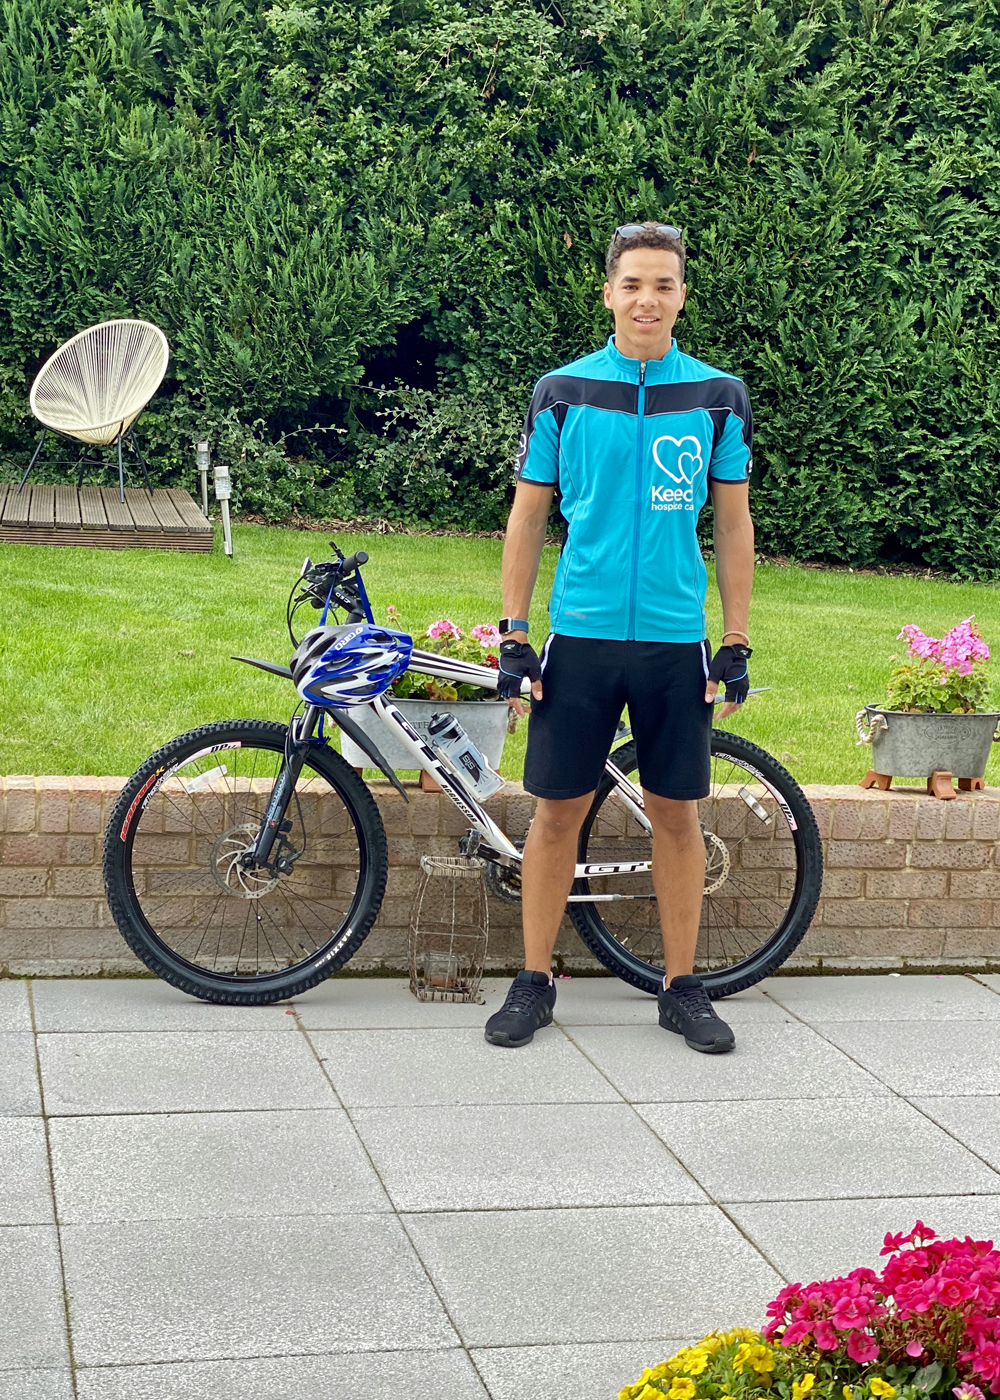 Keelan Pannell's  St. Joseph's Scout Leader  Keech Cycling Challenge